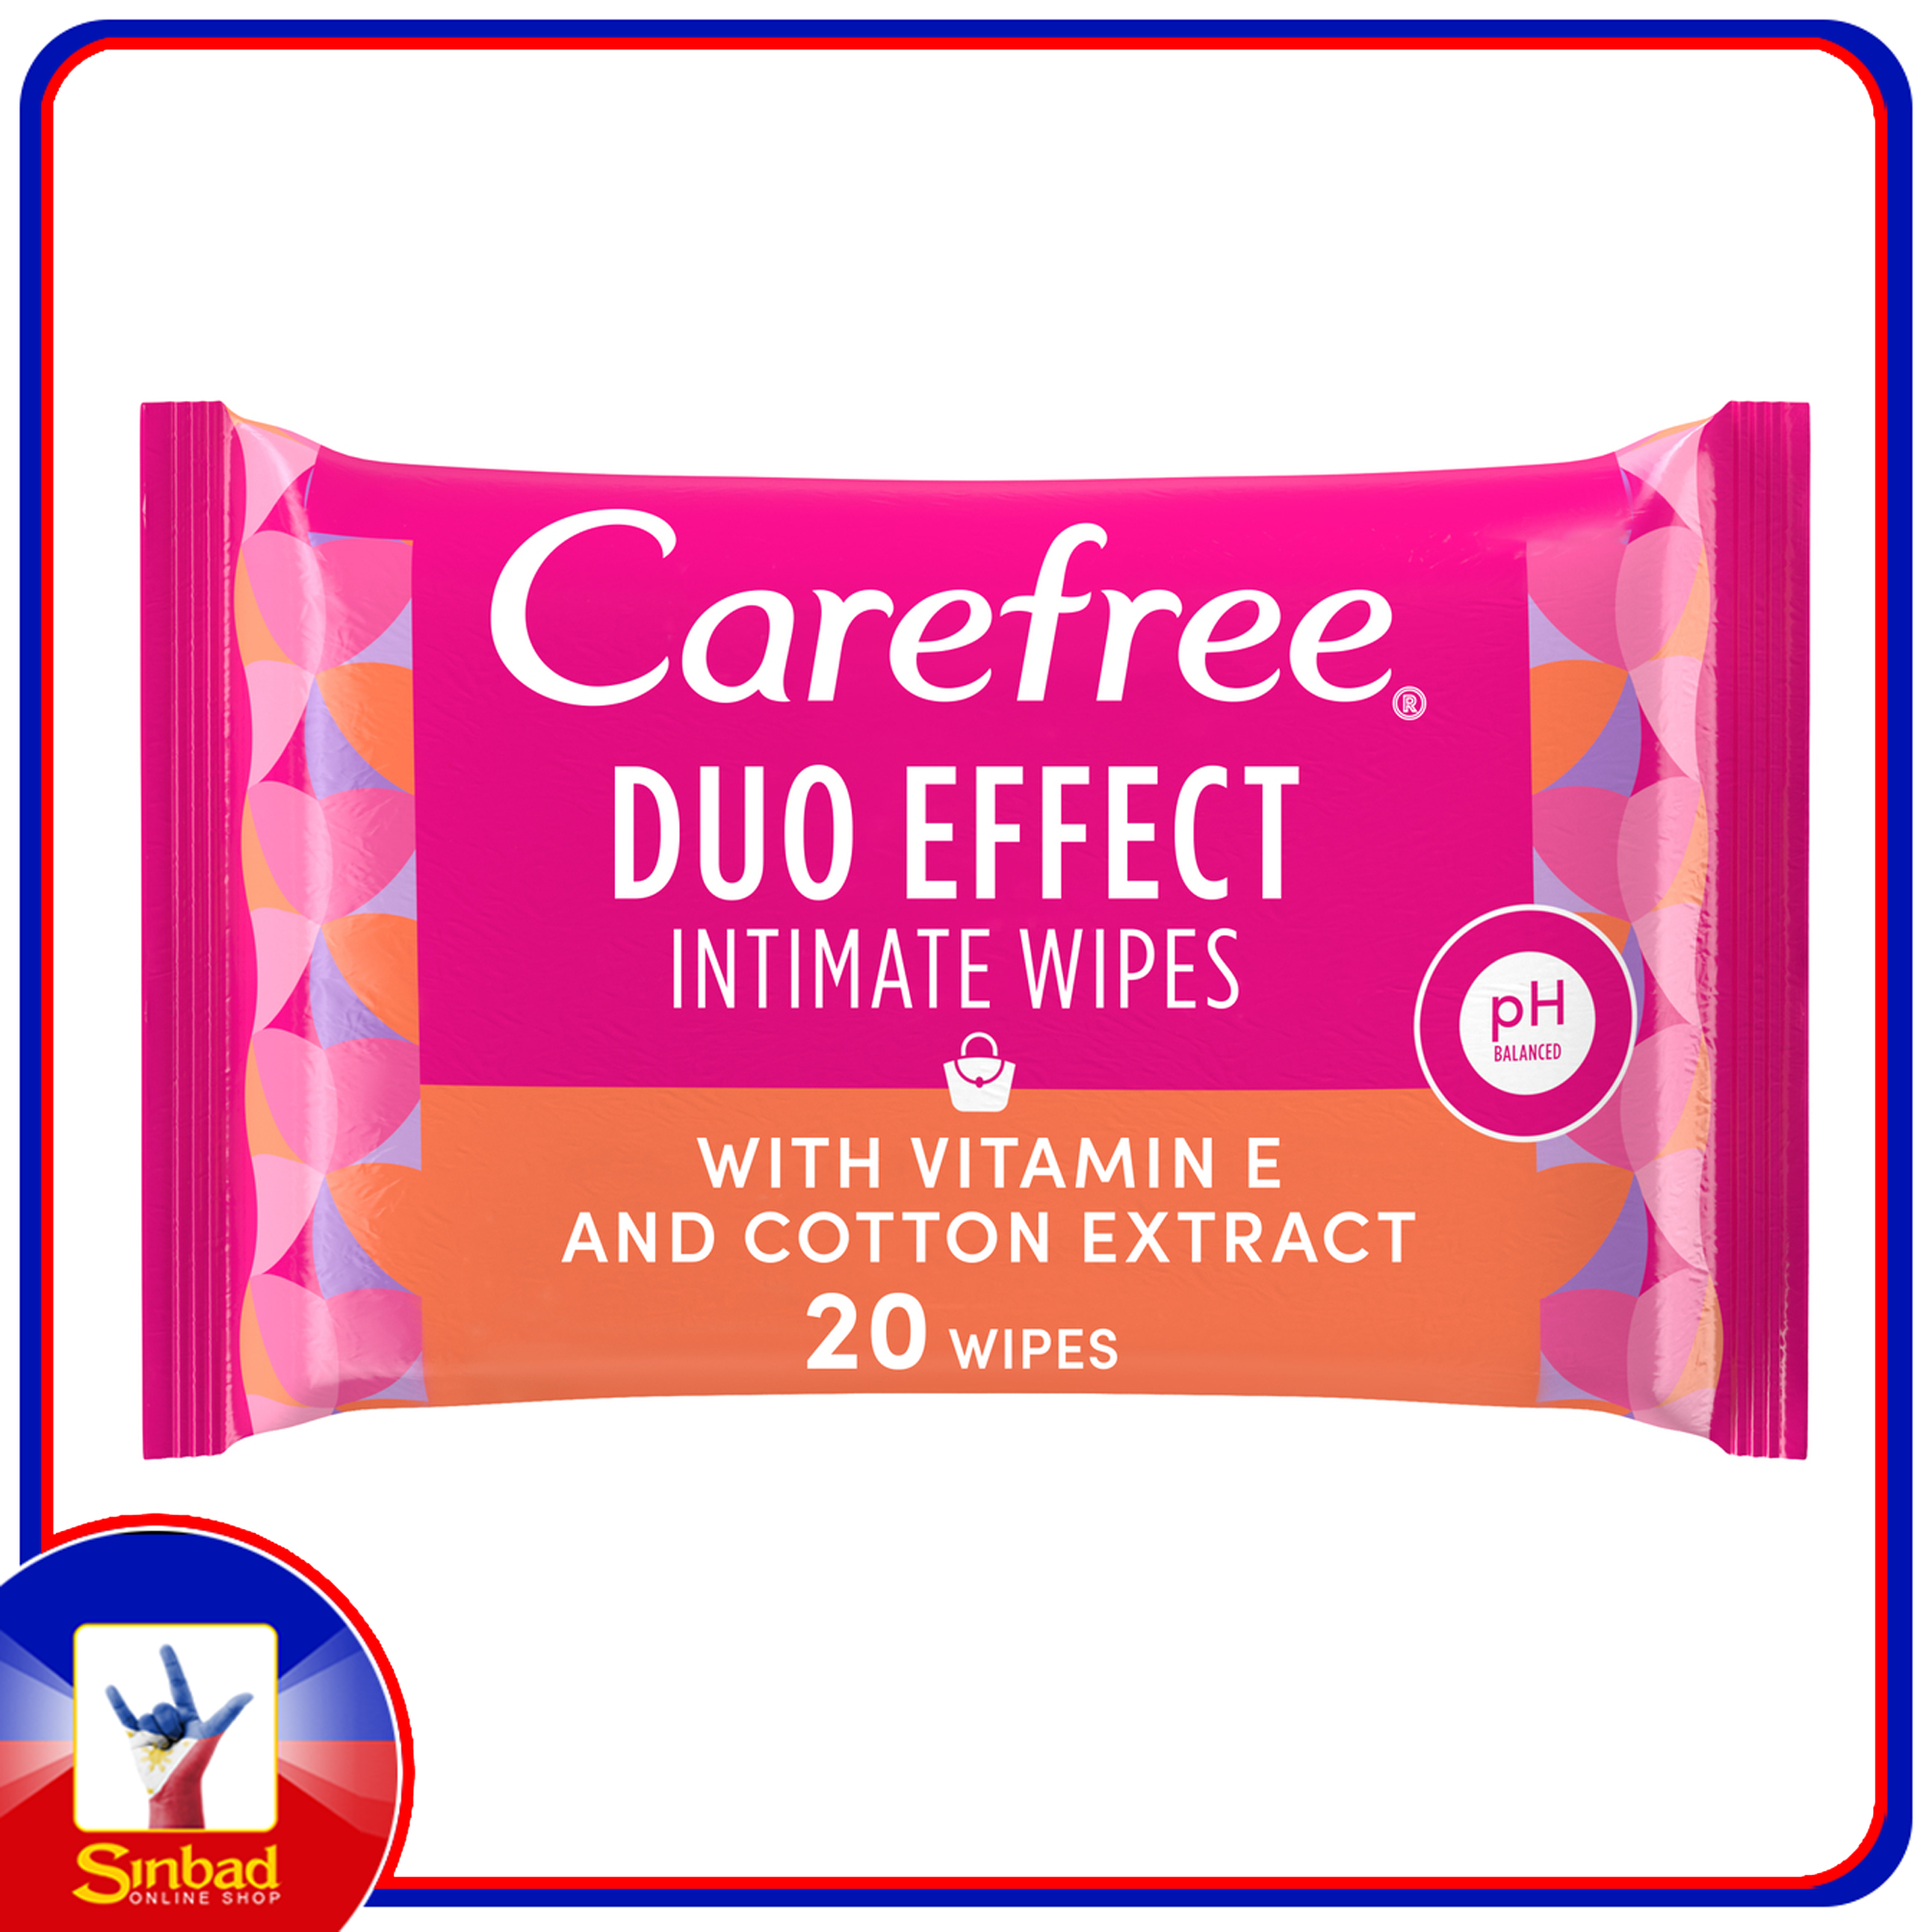 Carefree Daily Intimate Wipes Duo Effect with Vitamin E and Cotton Extract 20pcs